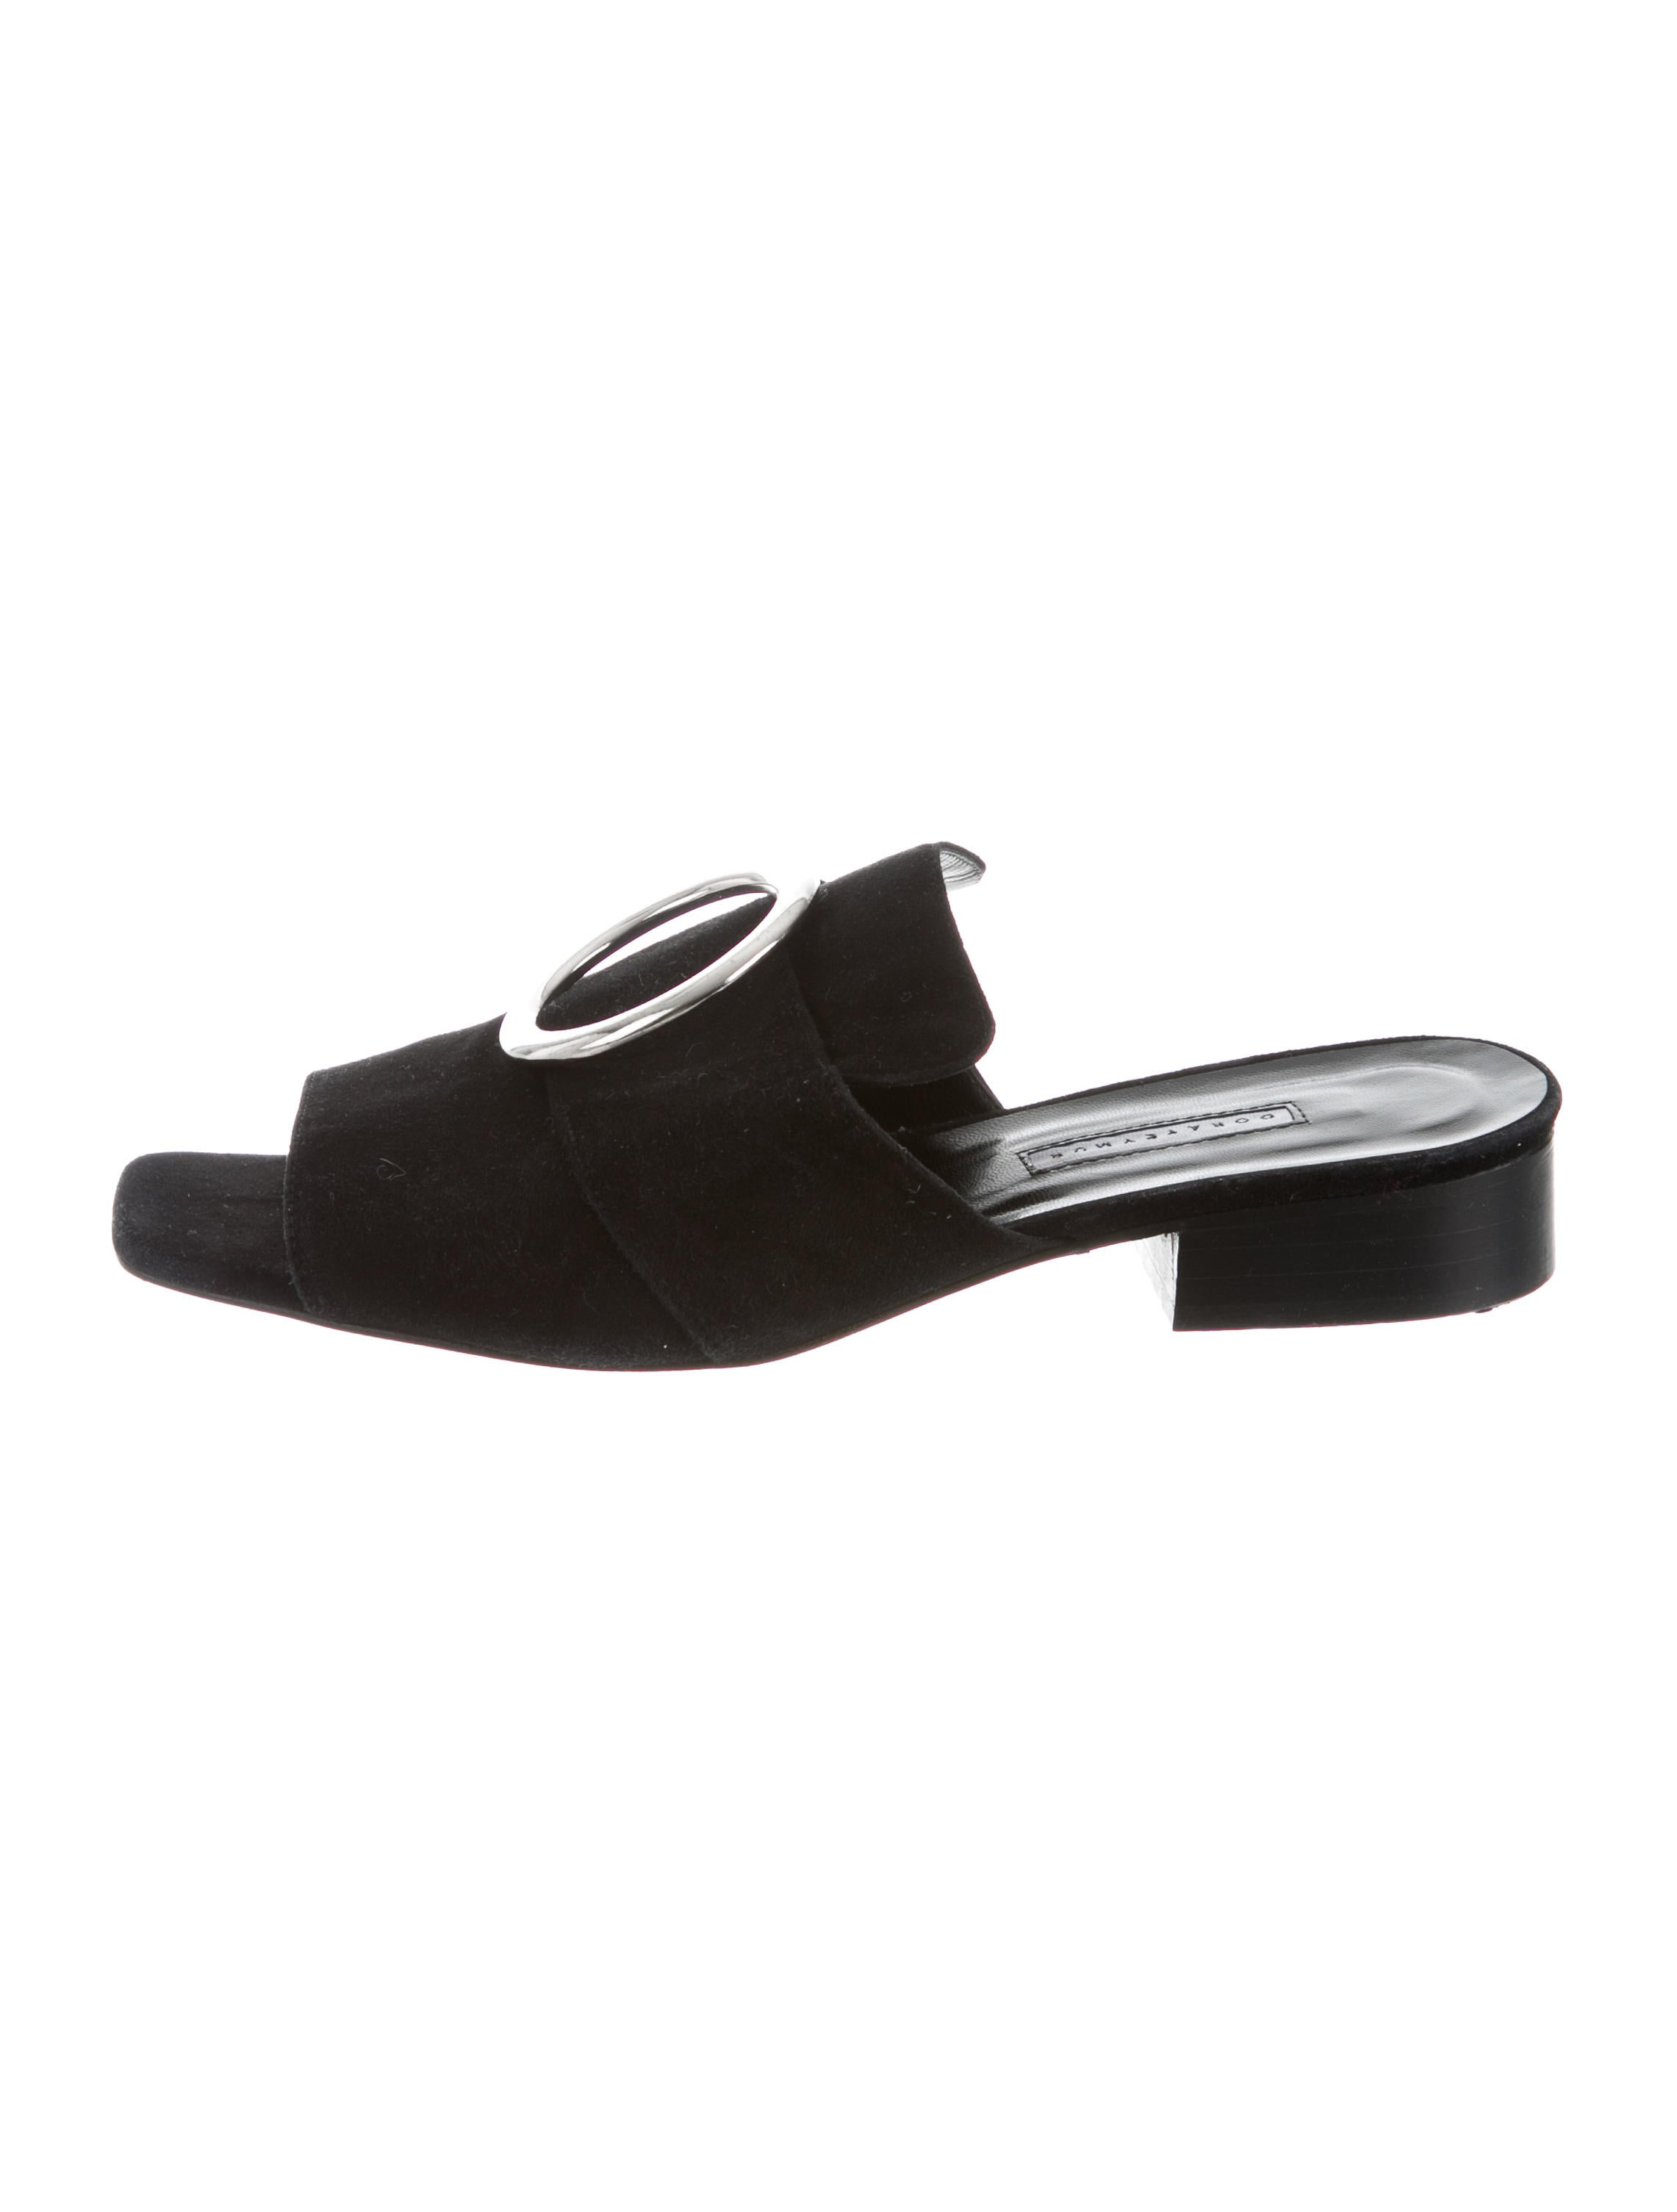 Dorateymur 2018 Harput Suede Slide Sandals free shipping fast delivery cheap sale purchase fashion Style sale online cheap sale new UW63P